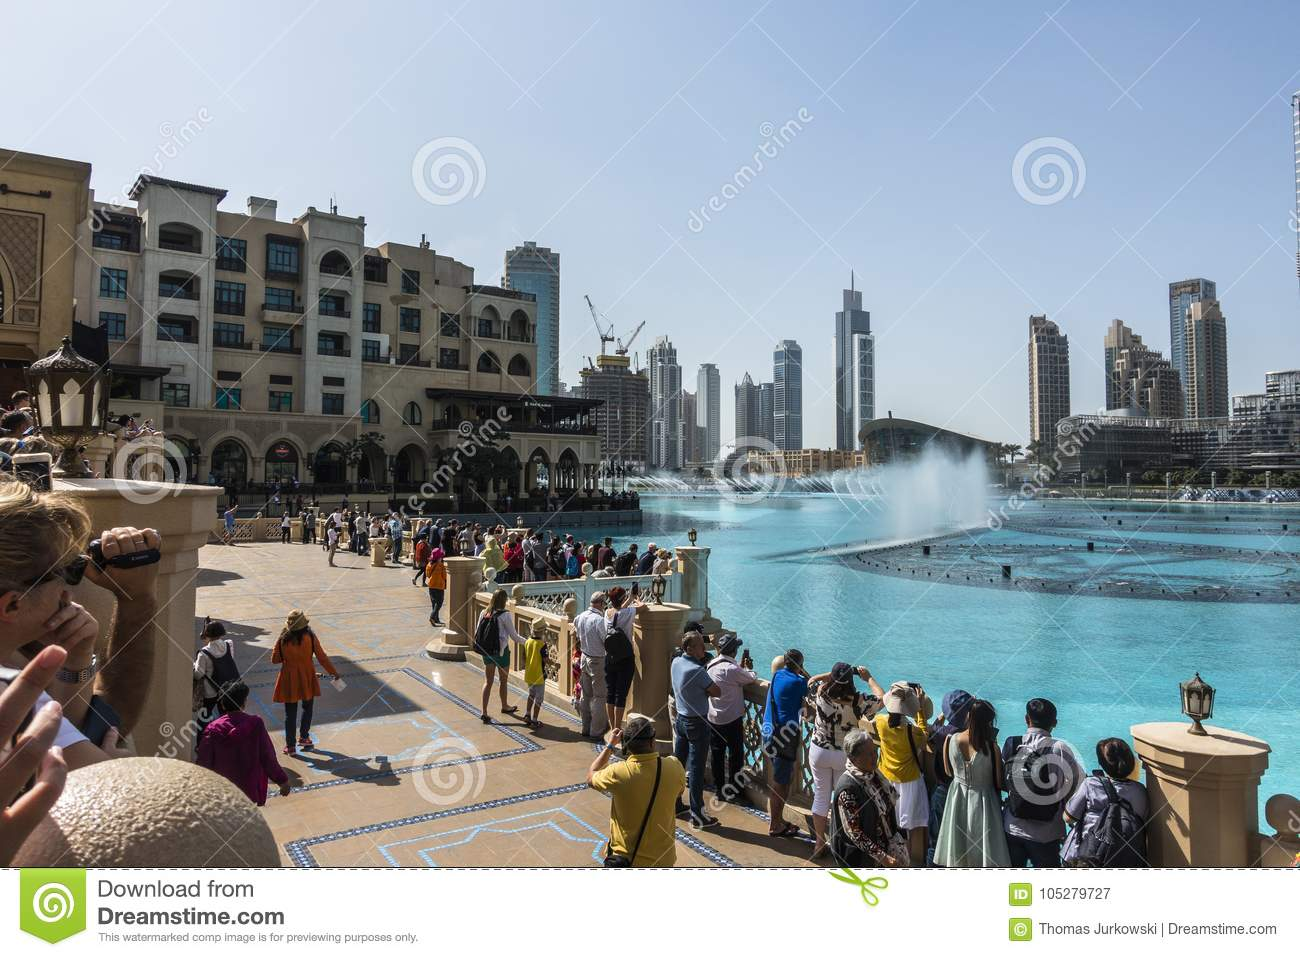 Crowd gathers around the dubai mall fountain to see the water show.